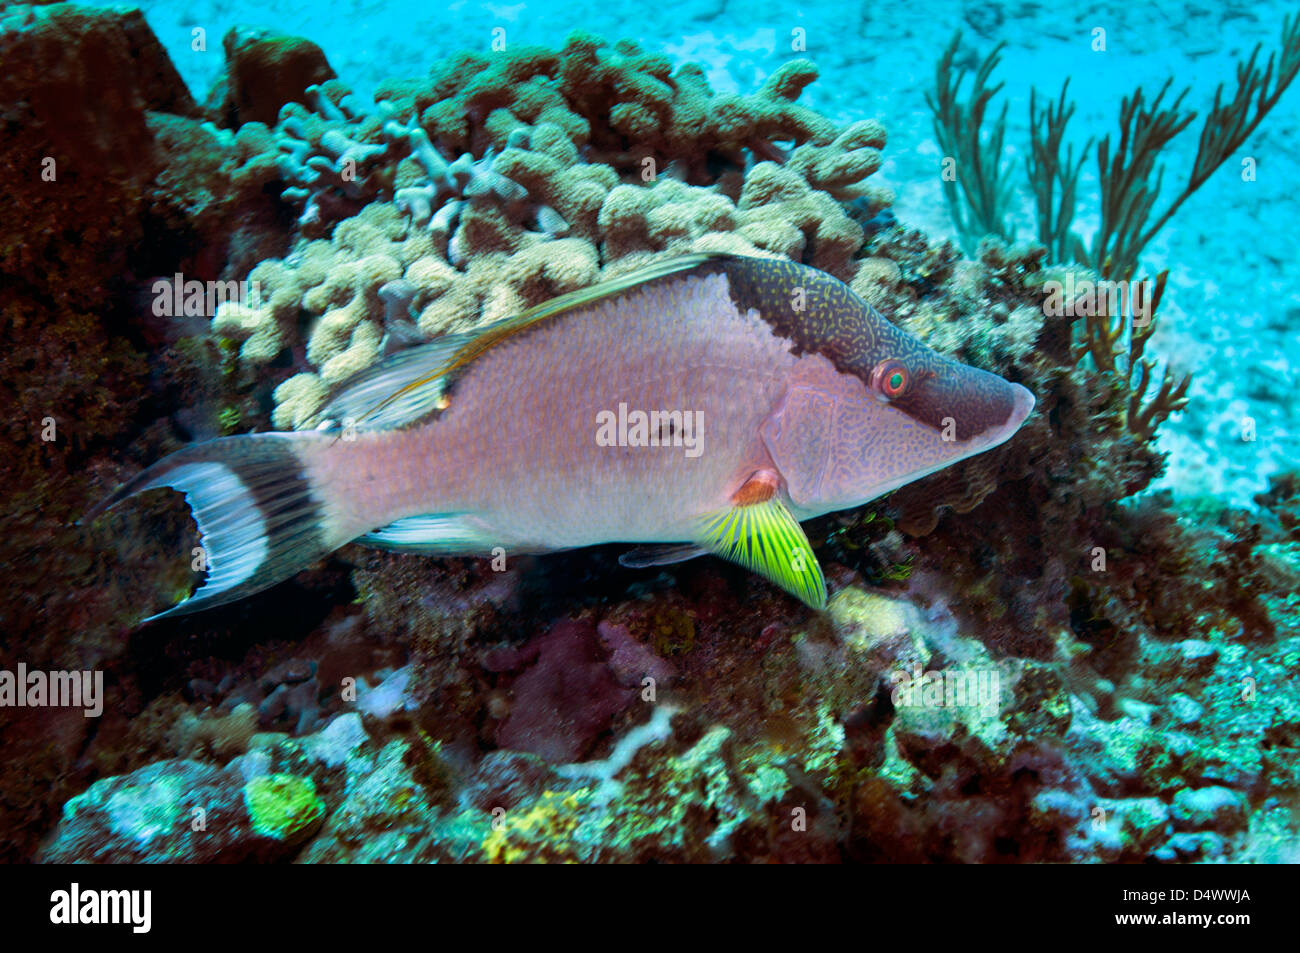 A Hogfish (Lachnolaimus maximus) swimming above a coral reef offshore of Grand Cayman Island. - Stock Image